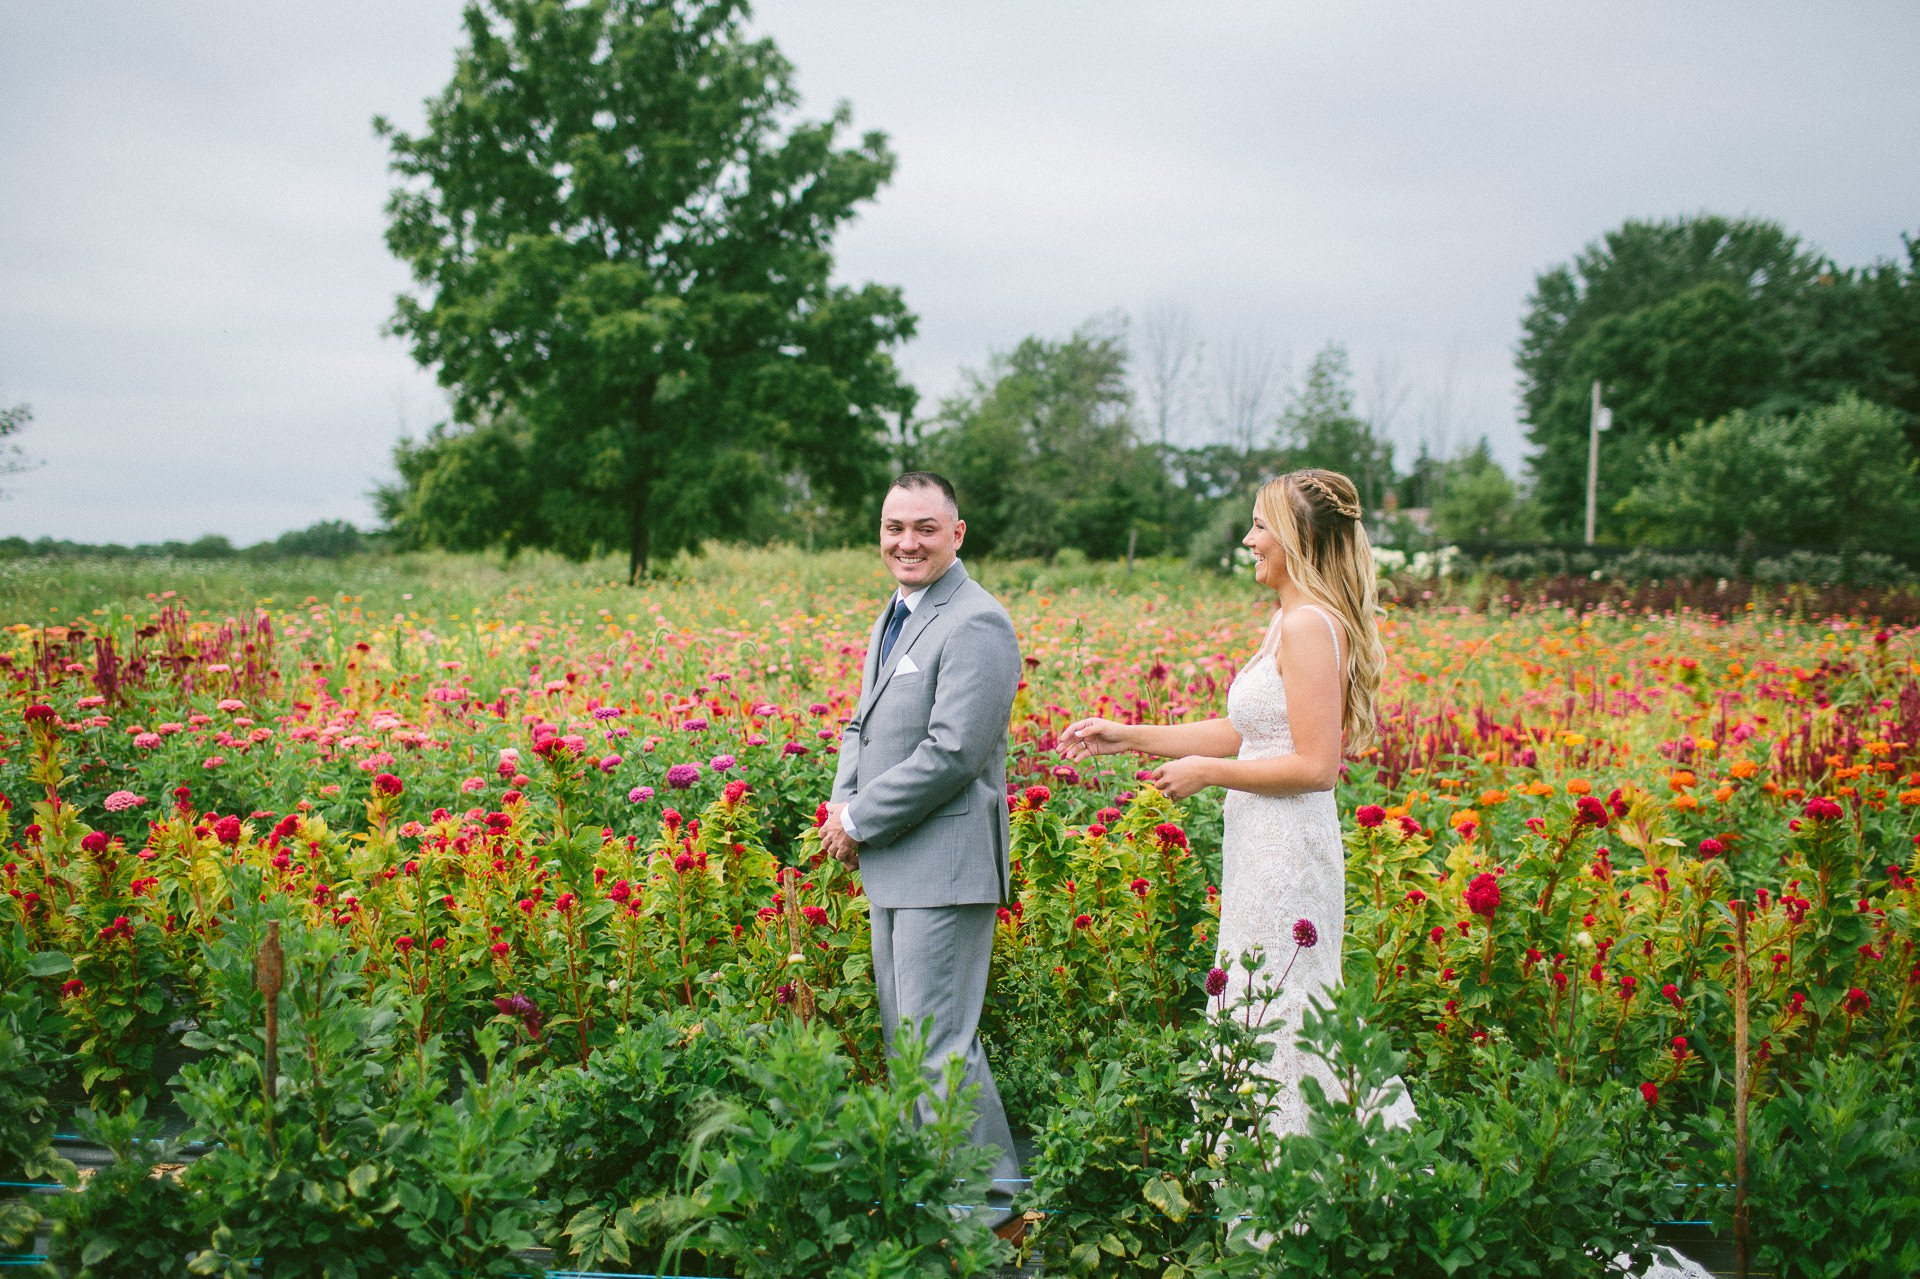 Conrad Botzum Farmstead Wedding Photographer 00005.JPG